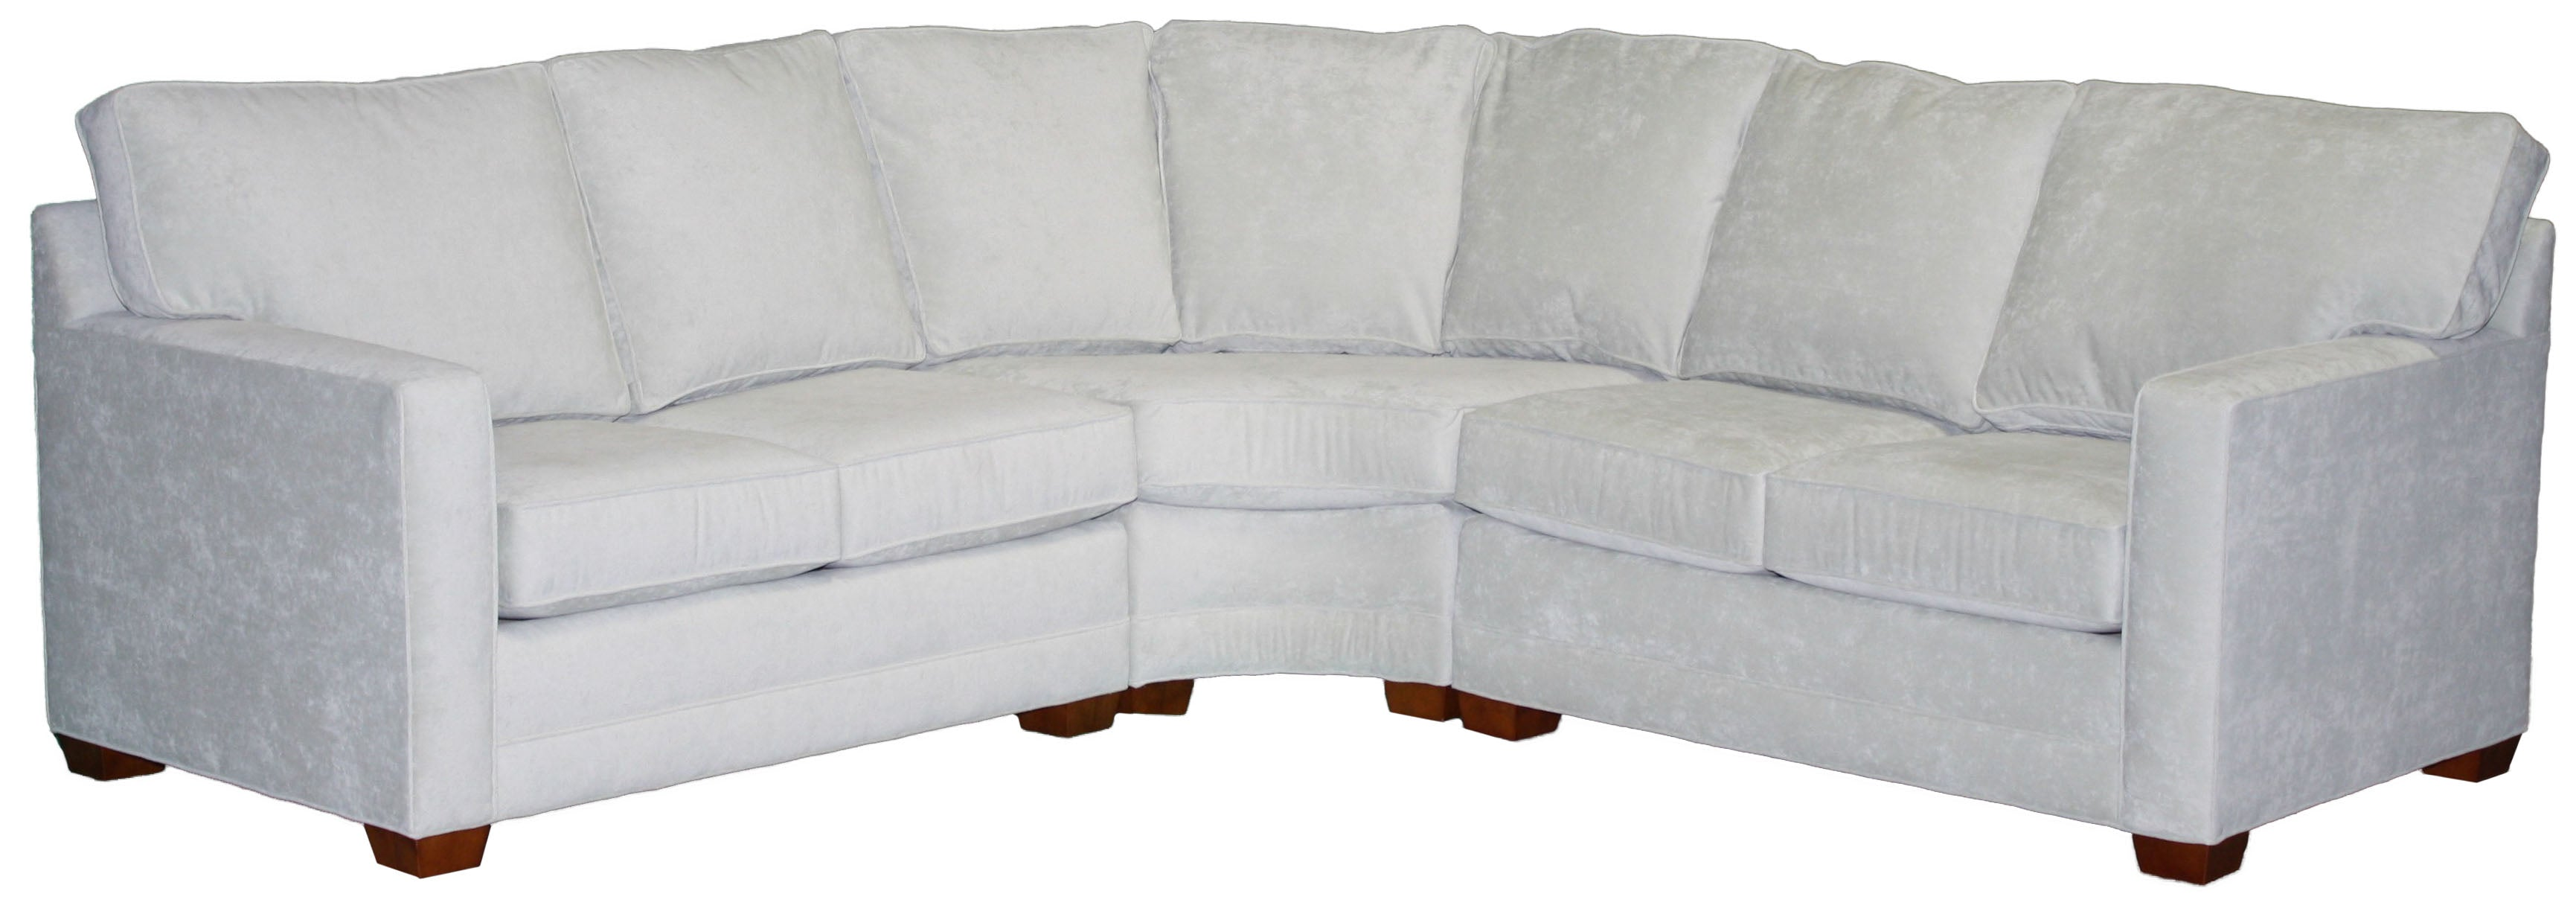 Excellent Temple Tailor Made 5500 Sectional With Curved Corner Gamerscity Chair Design For Home Gamerscityorg